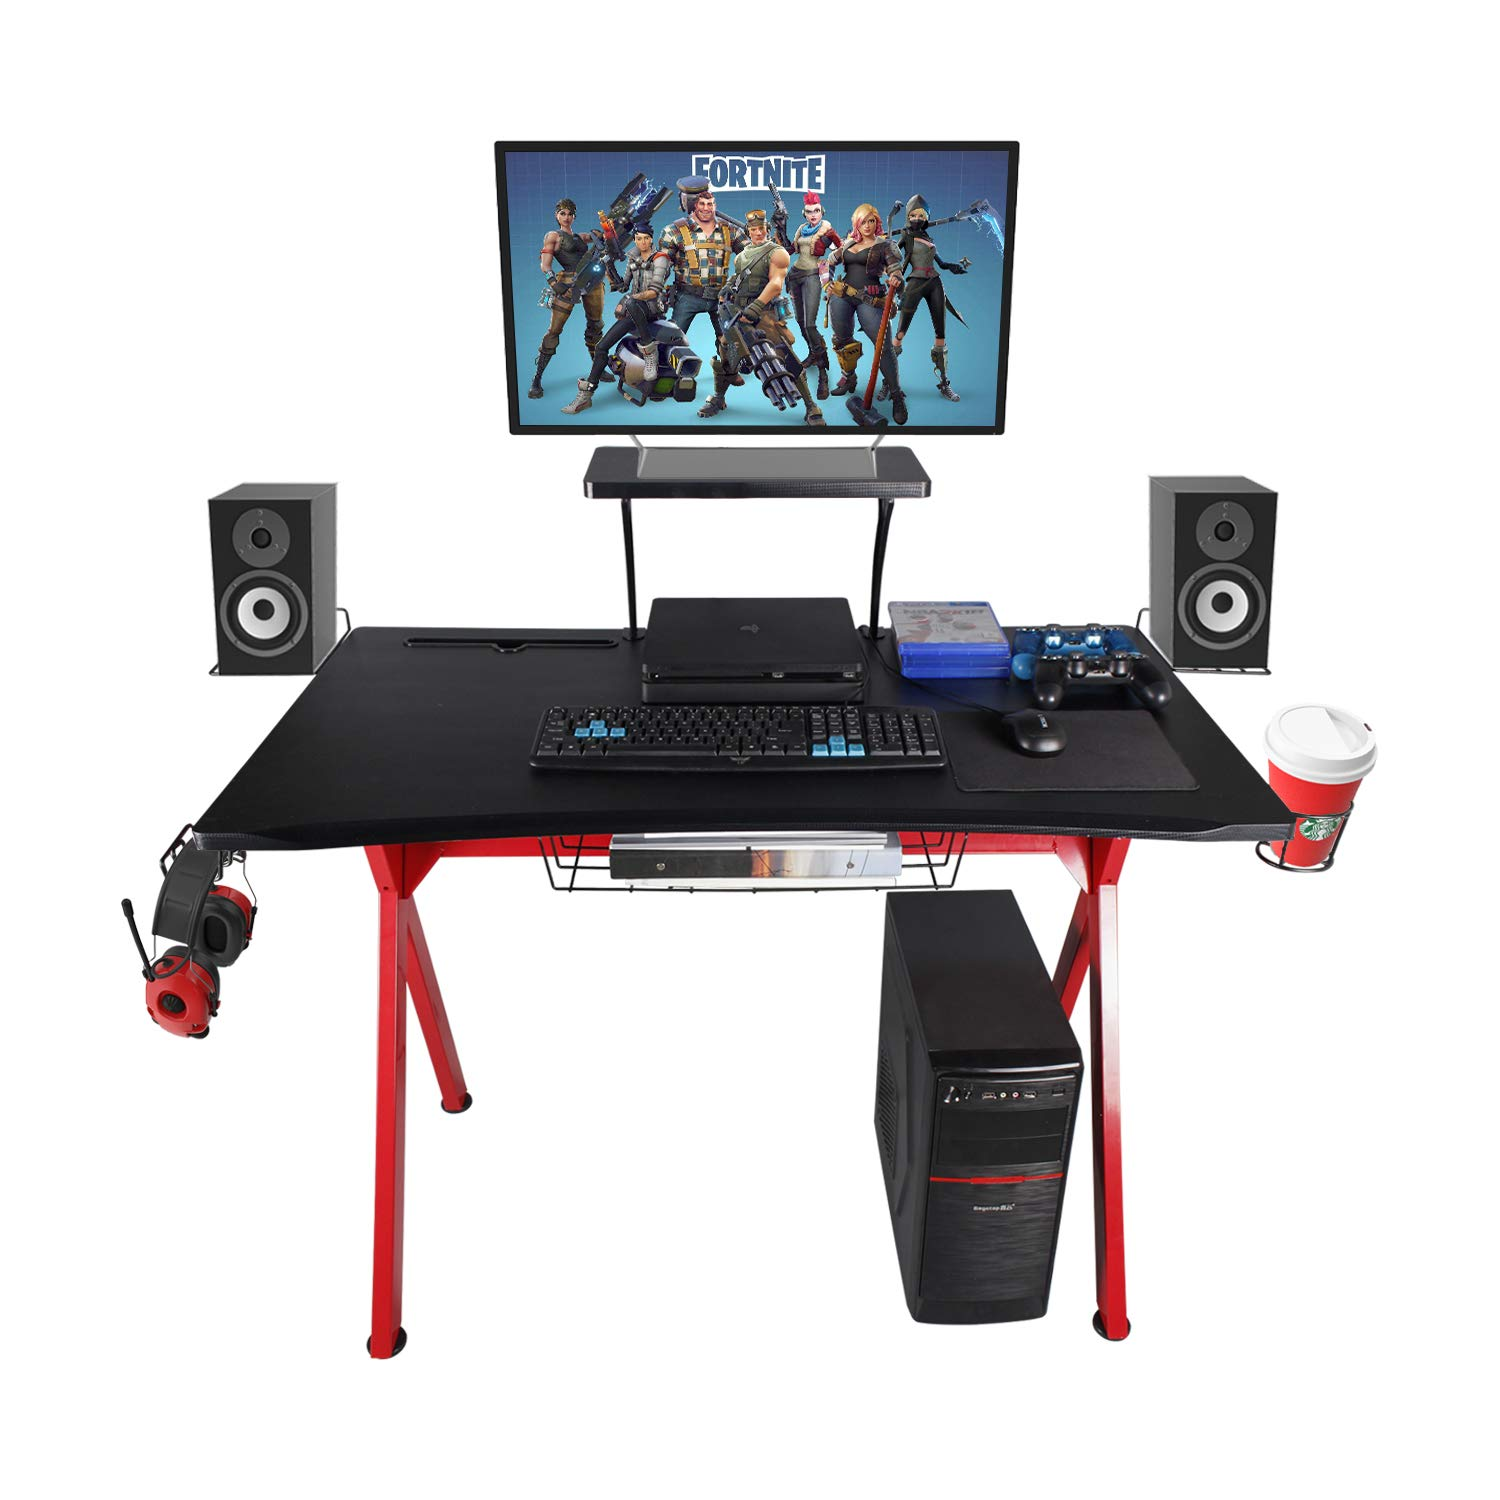 LAZZO Gaming Desk 41'' Gaming Table Home Computer Desk with Display Support Plate, Cup Holder and Headphone Hook,Gamer Workstation Game Table, Curved Front Desktop,Red & Black Design(41'' Wx23.5 D) by LAZZO